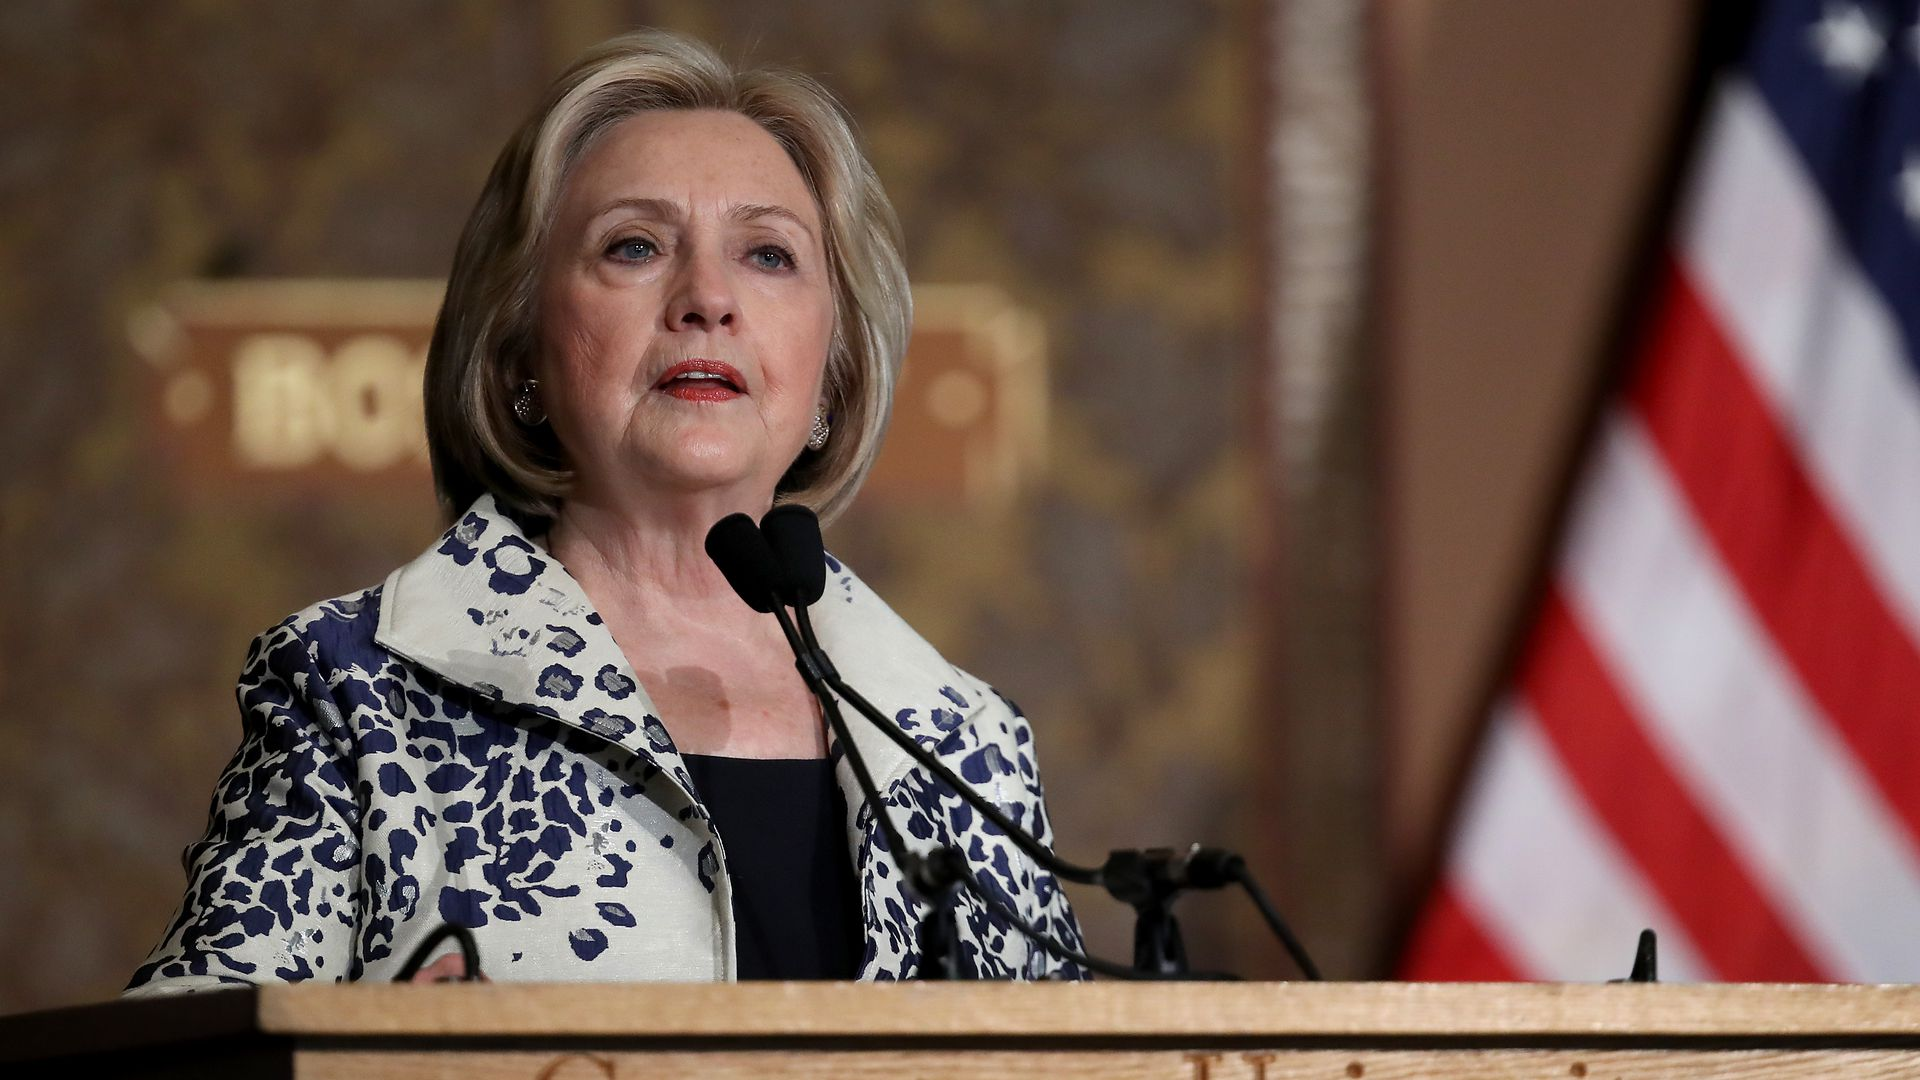 Former U.S. Secretary of State Hillary Clinton speaks at Georgetown University September 27